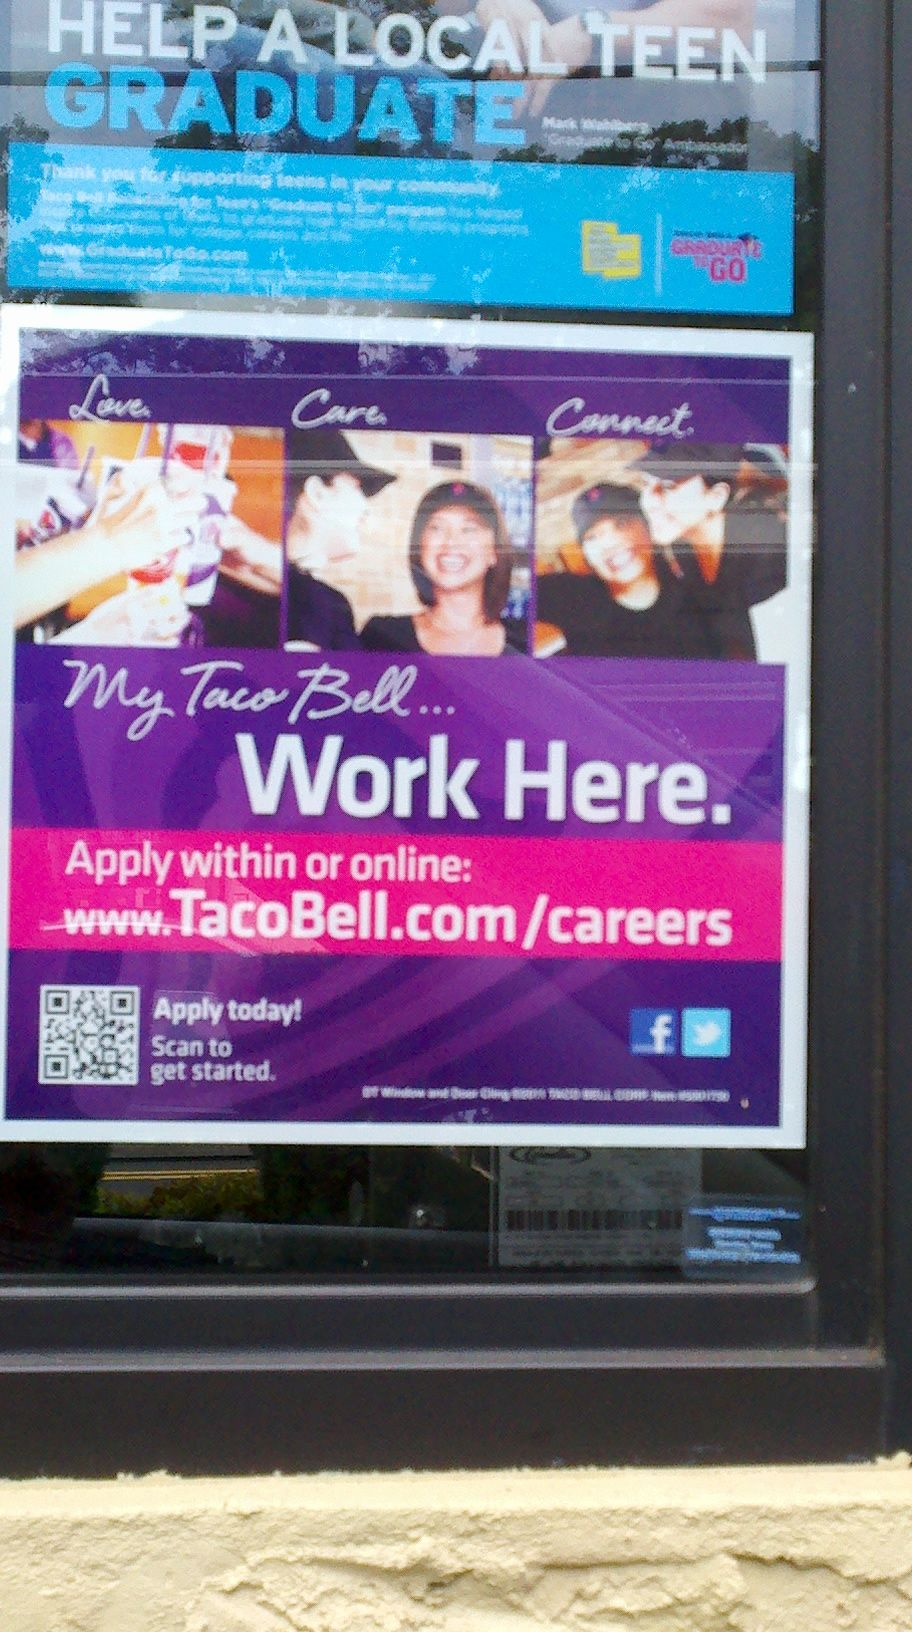 S/F Undetermined. Taco Bell using QR codes for job